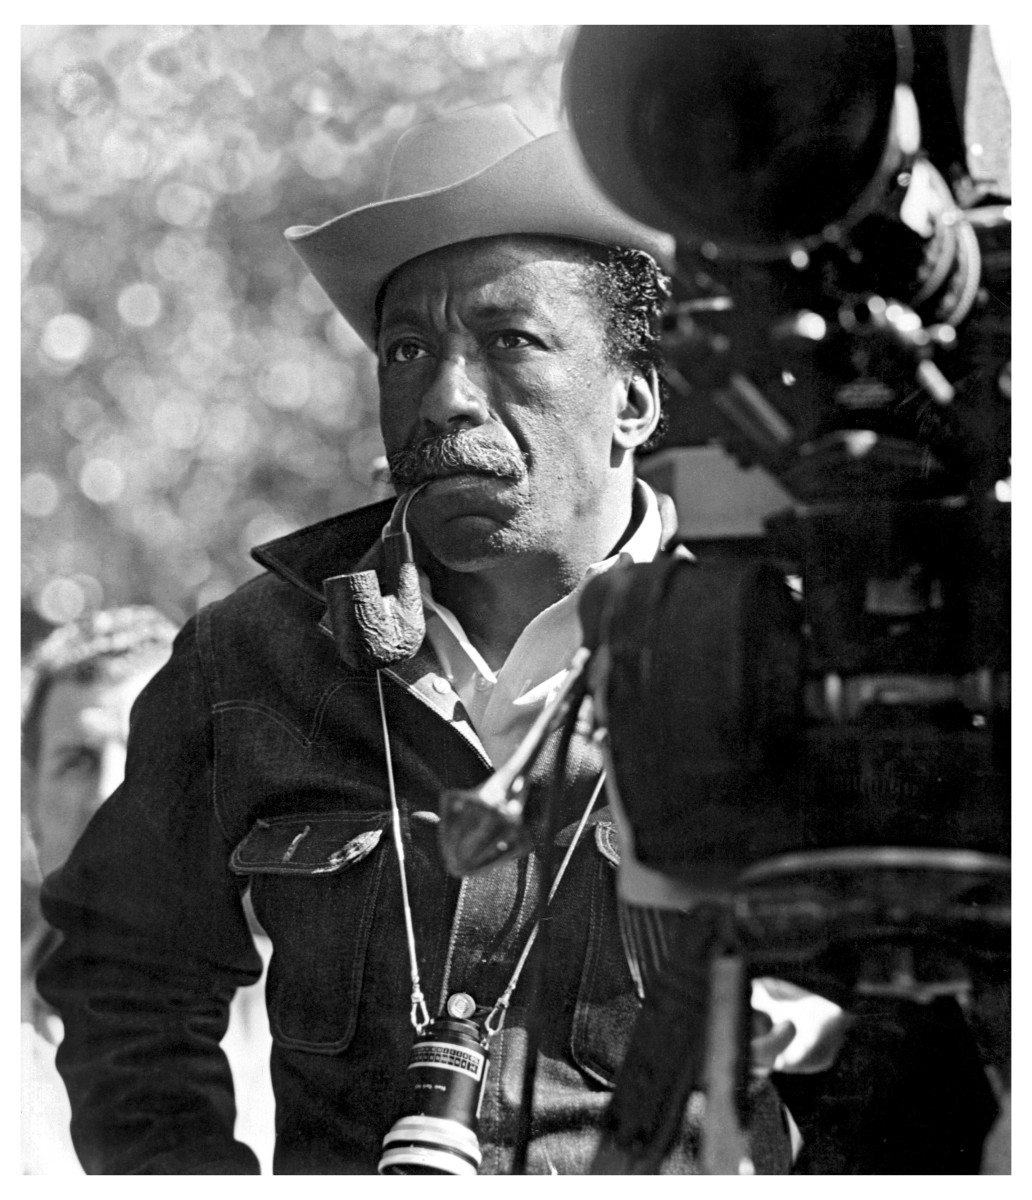 Gordon Parks directing the film 'The Learning Tree' in 1969